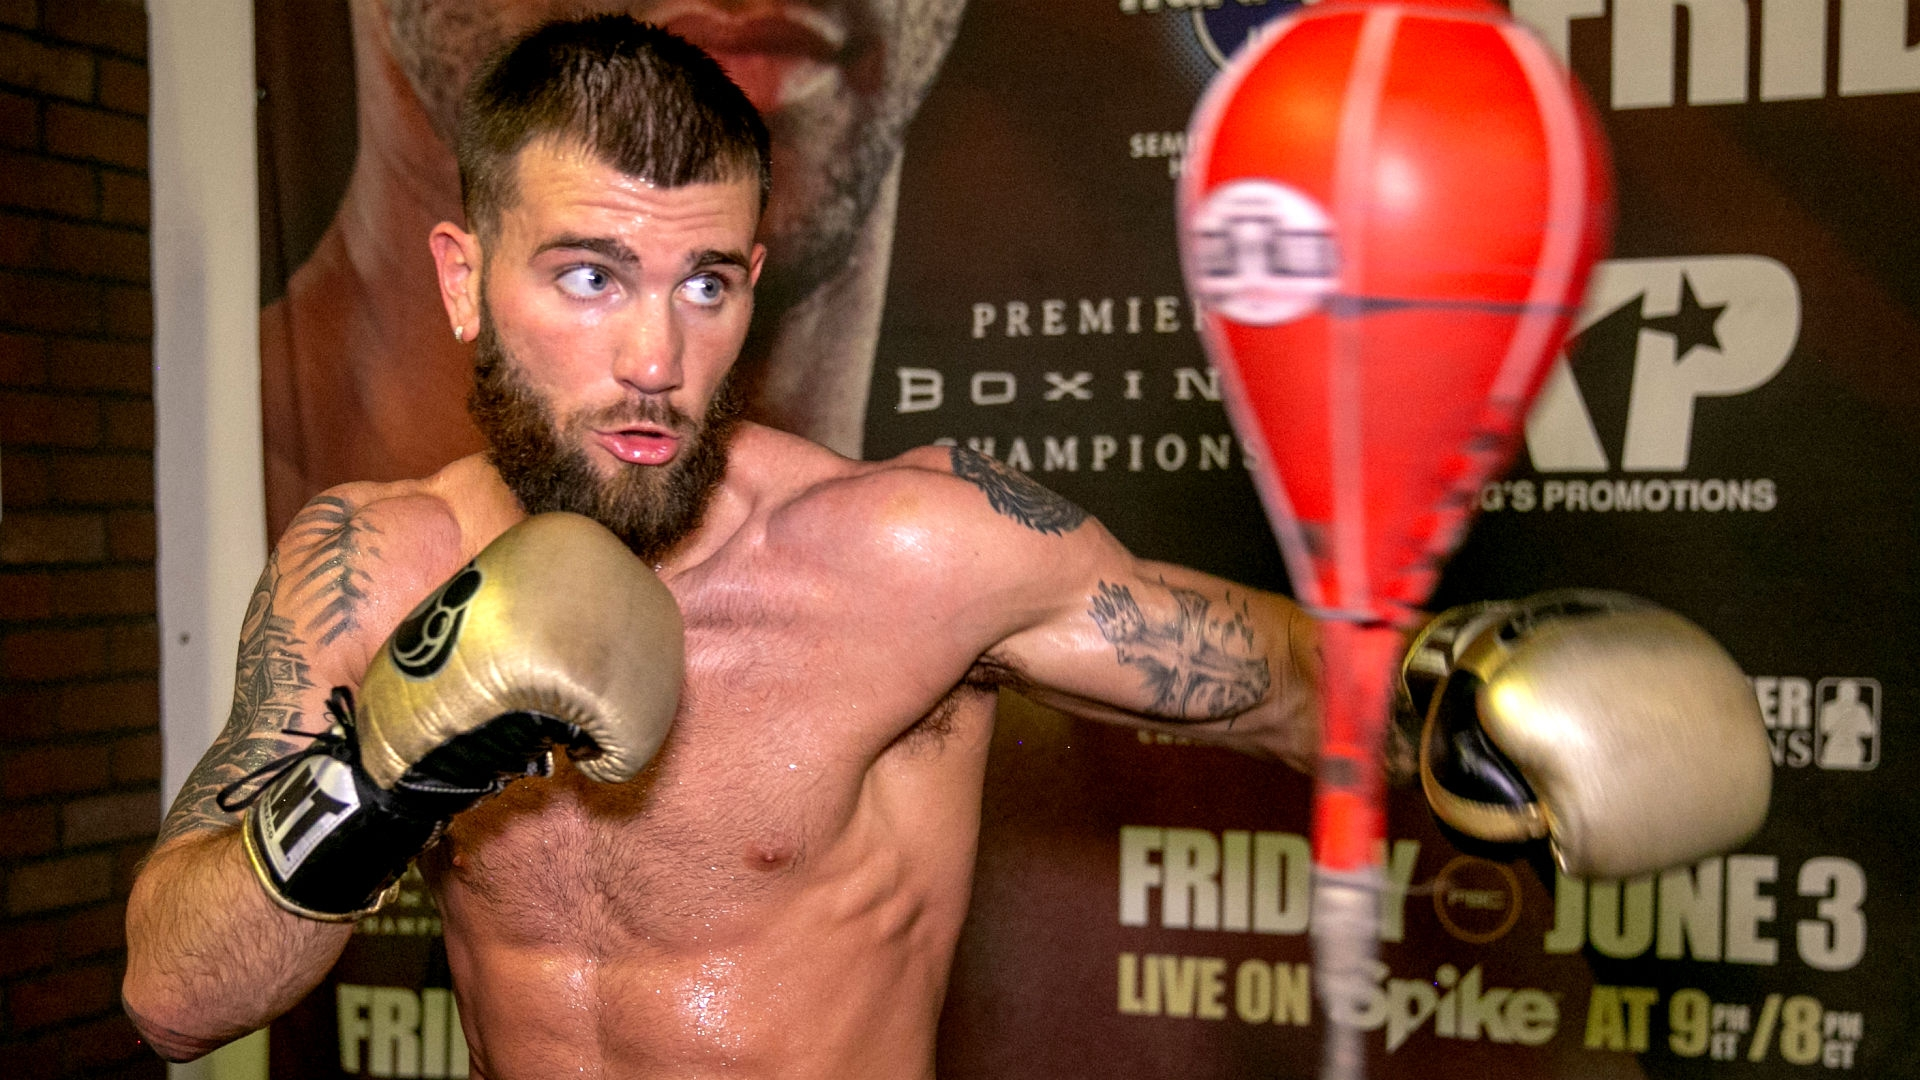 BOXING NEws: Caleb Plant expects an easy fight with Saul Alvarez